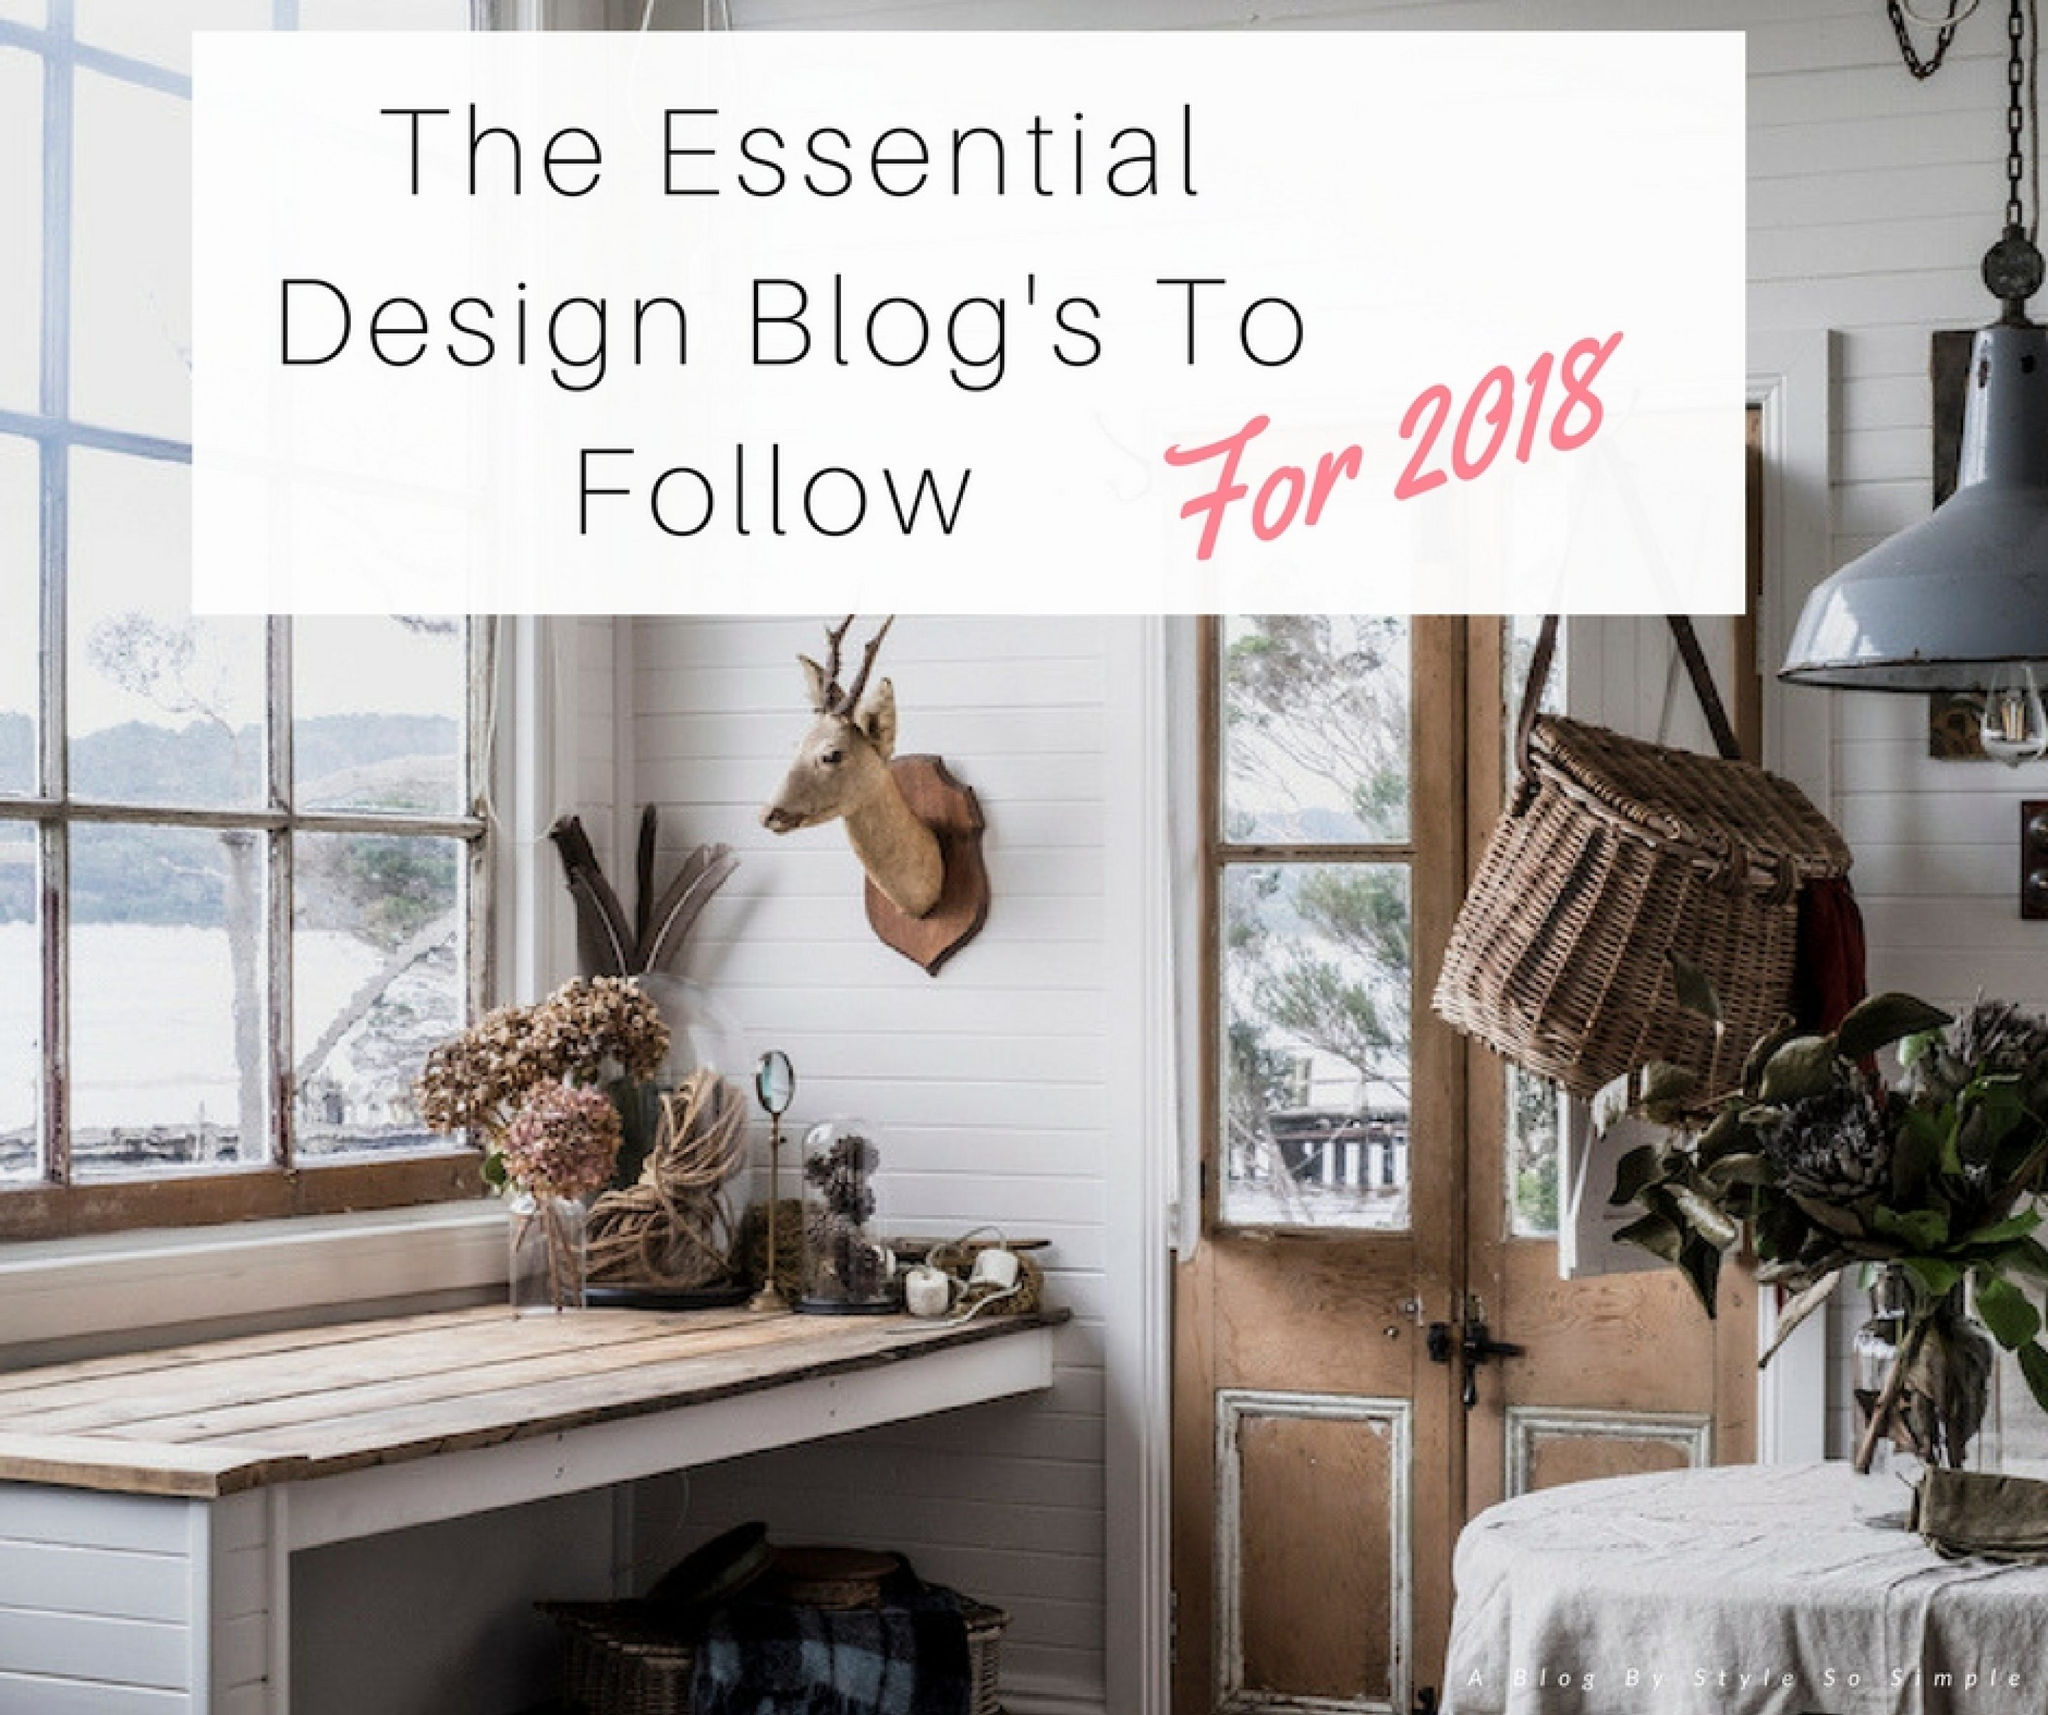 High Quality These Little Reads Will Give You Everything You Need From Simple Design  Inspo, Current Interior Photo Galleries (that Is Not Pinterest Lol) To The  Most Up ...